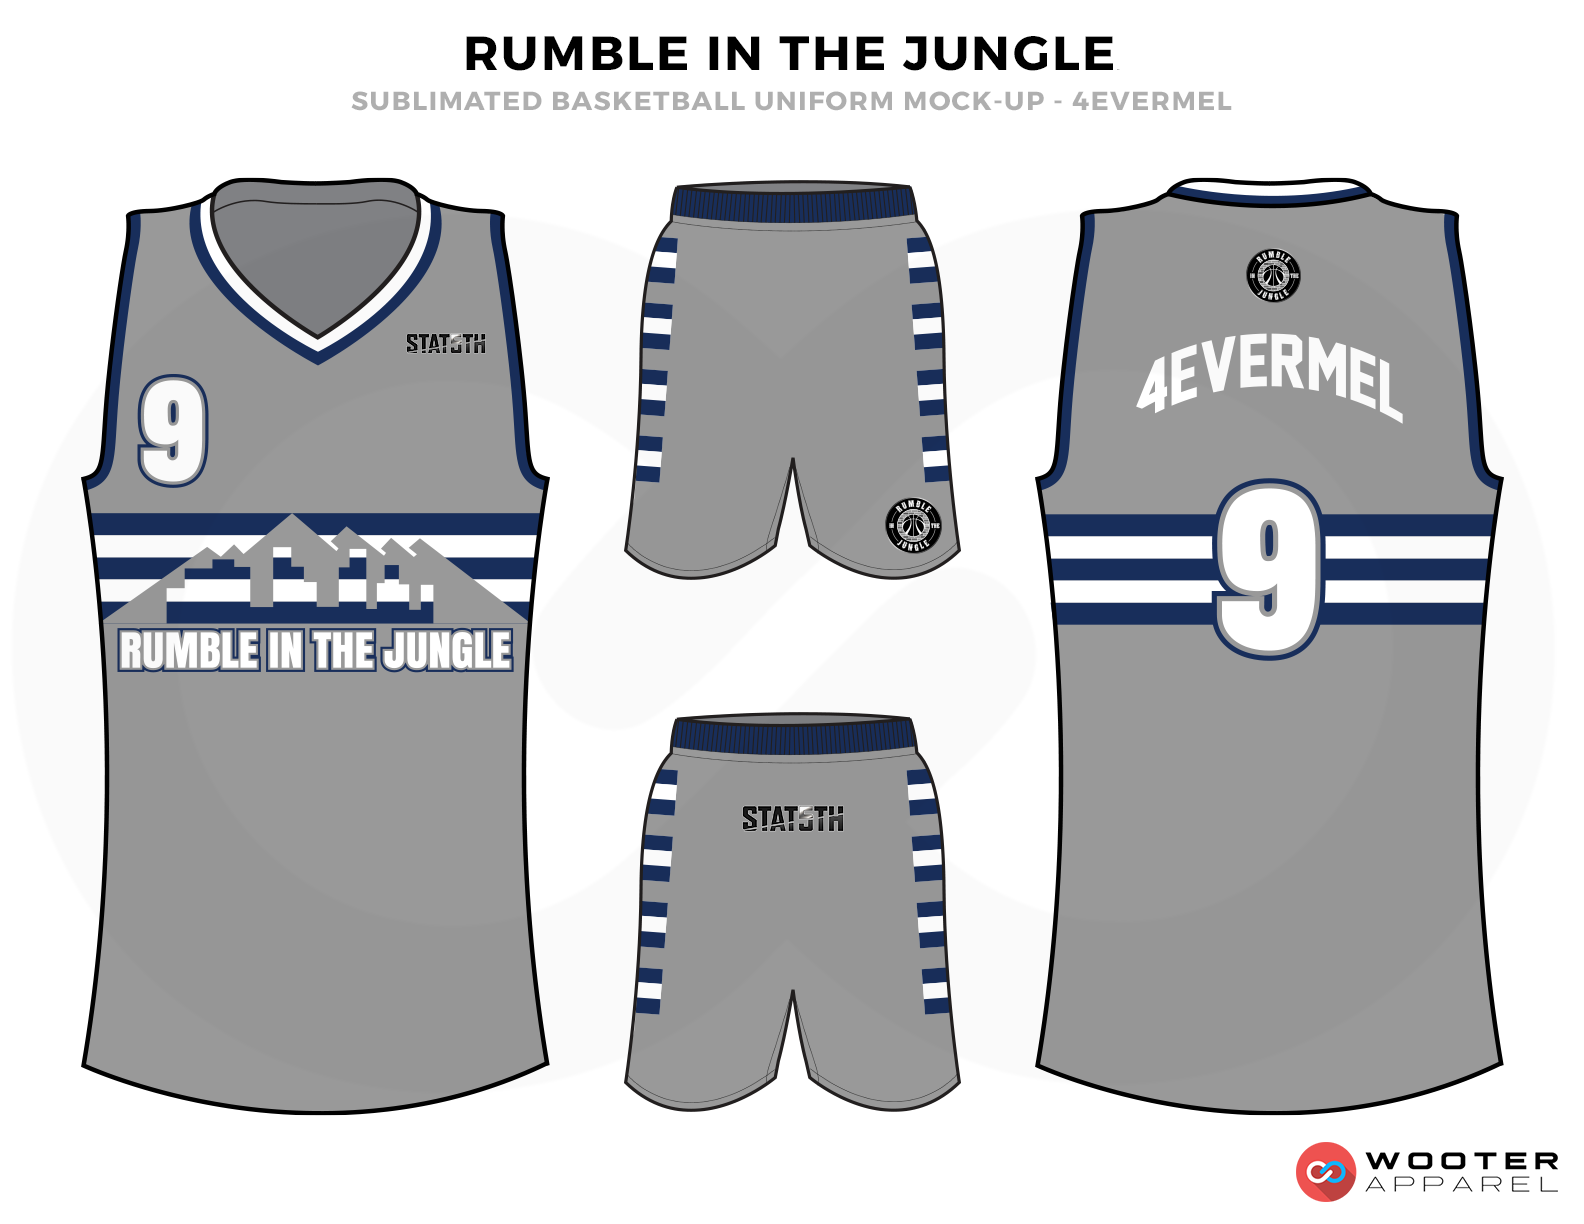 RUMBLE IN THE JUNGLE Grey Blue and White Basketball Uniforms, Jersey and Shorts